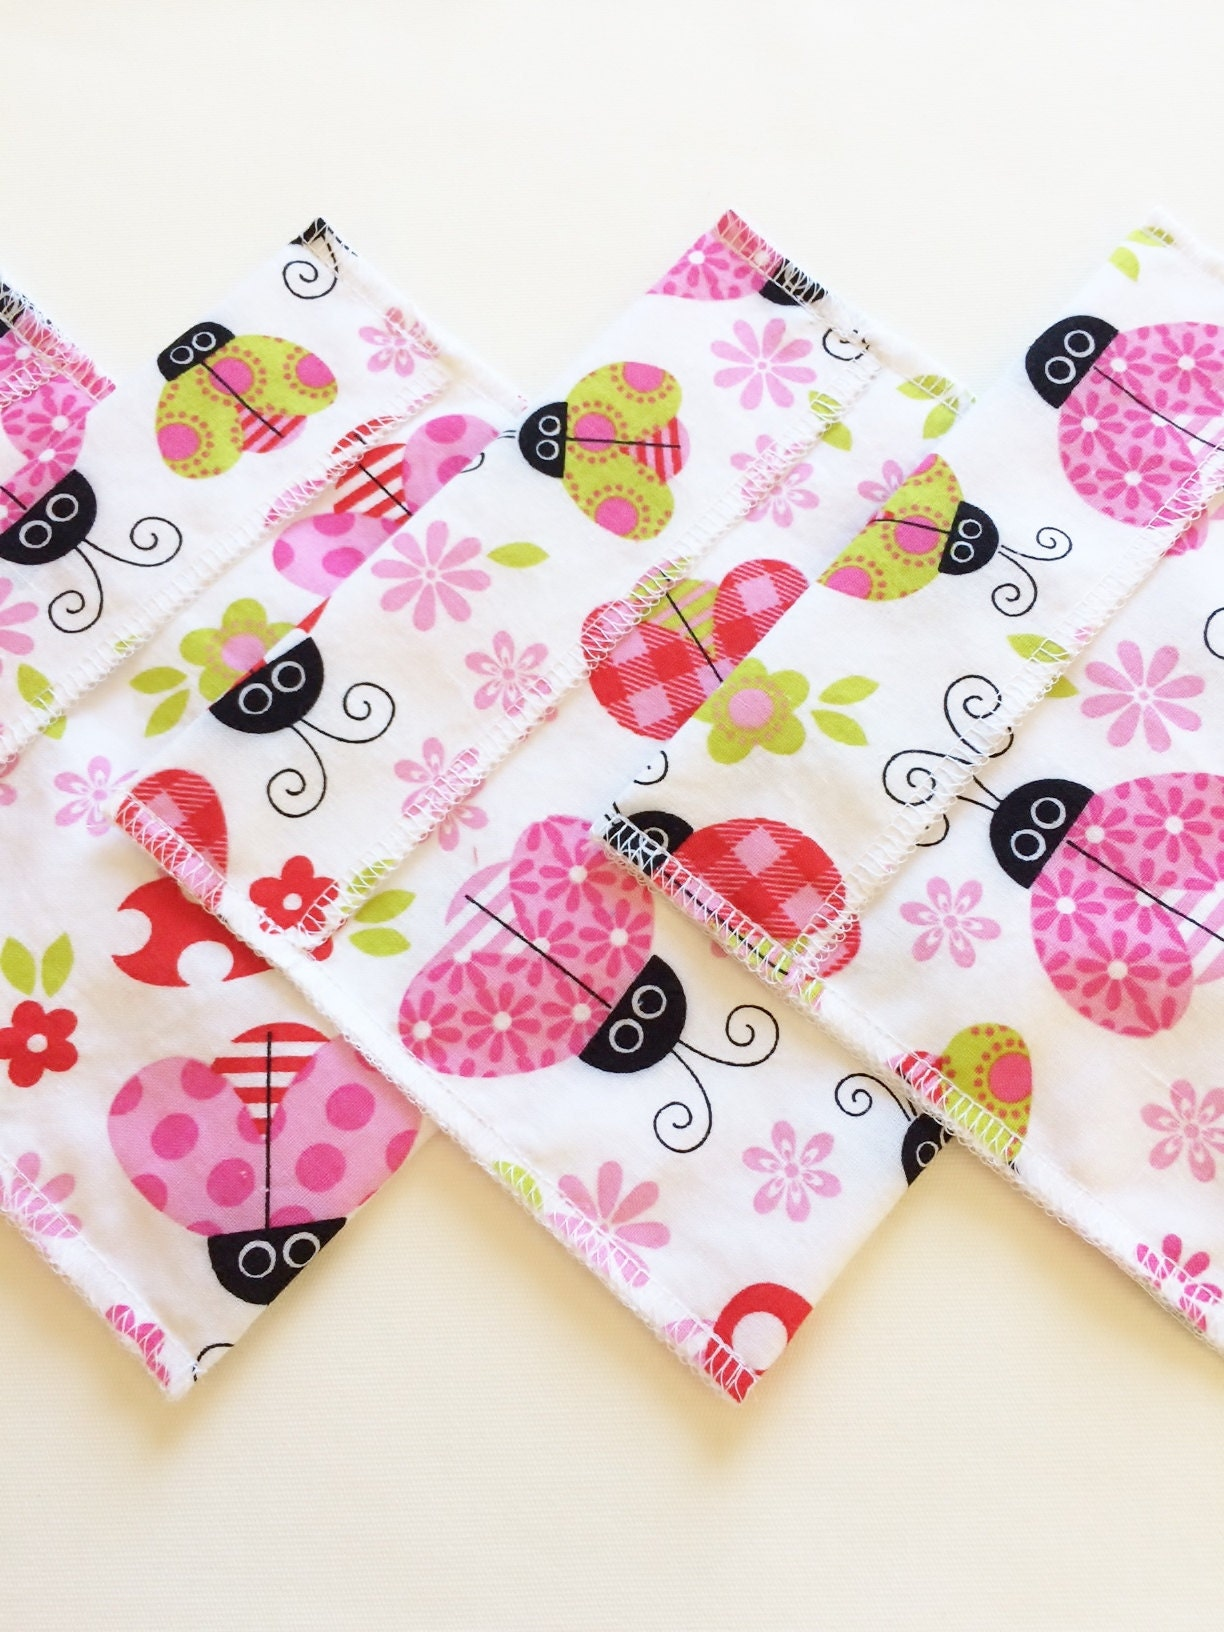 GiftsandHomeDecorUS Ladybugs Sandwich bags and snack bags, ready to ship